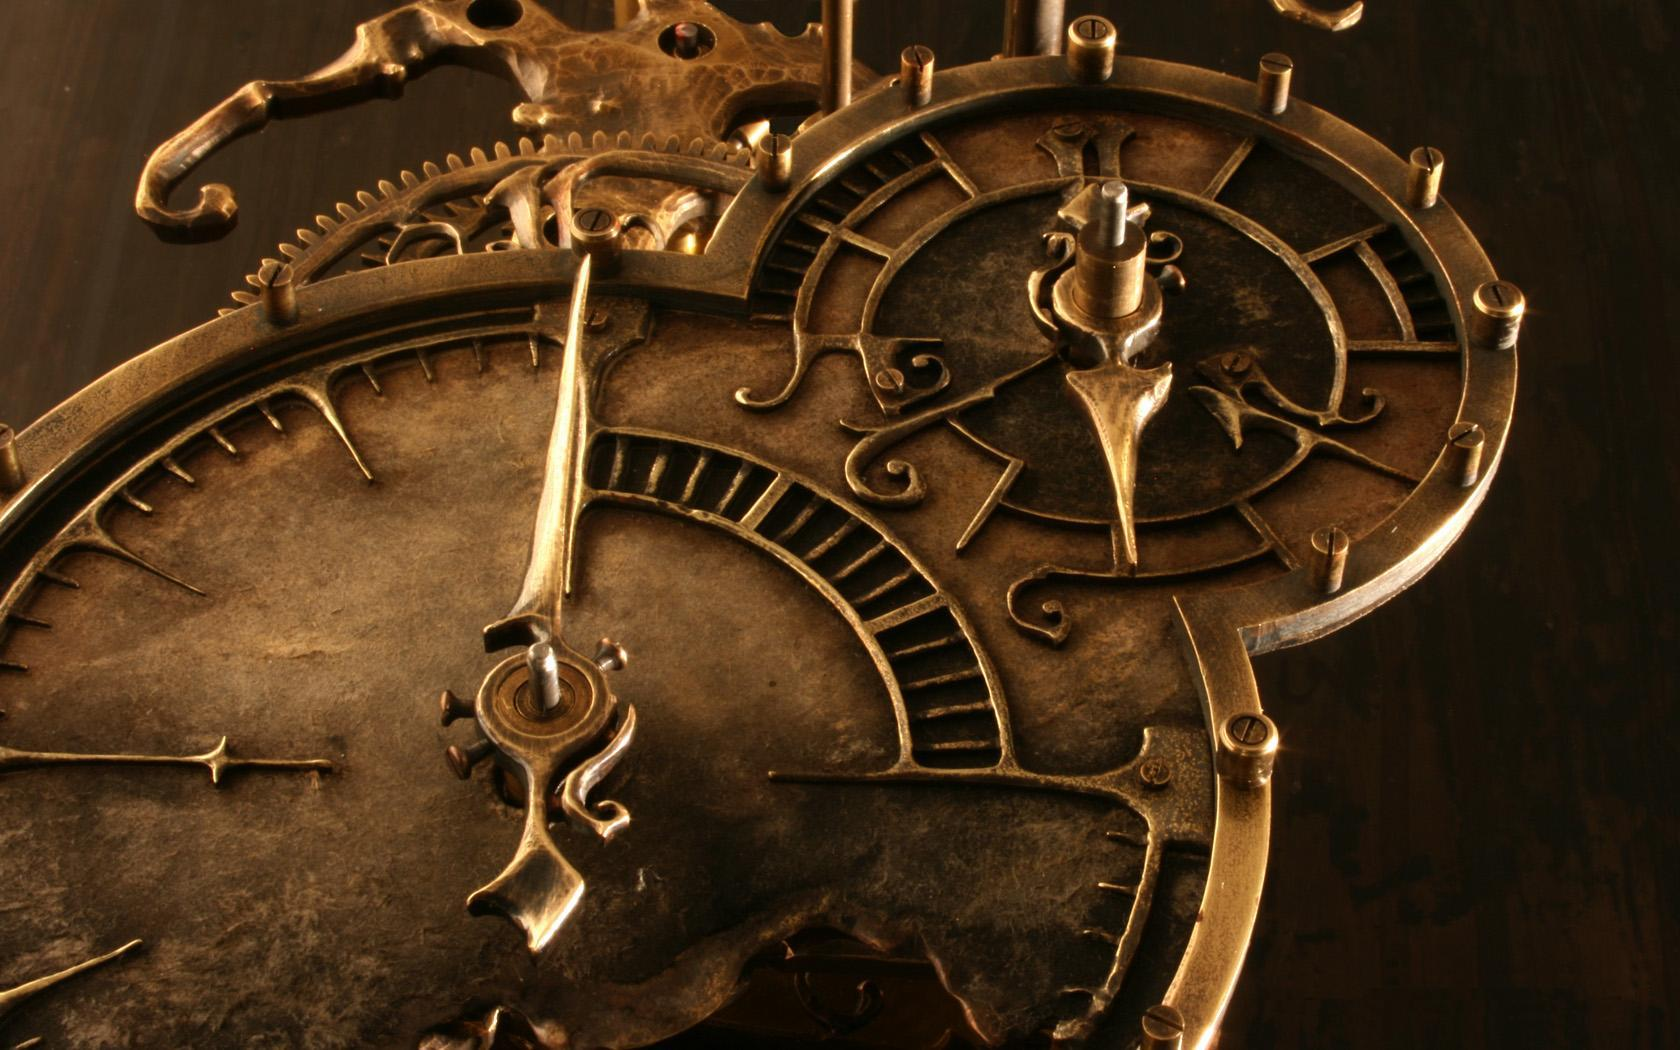 eacabfbcaaaa-steampunk-clock-steampunk-hat-wallpaper-wp380700